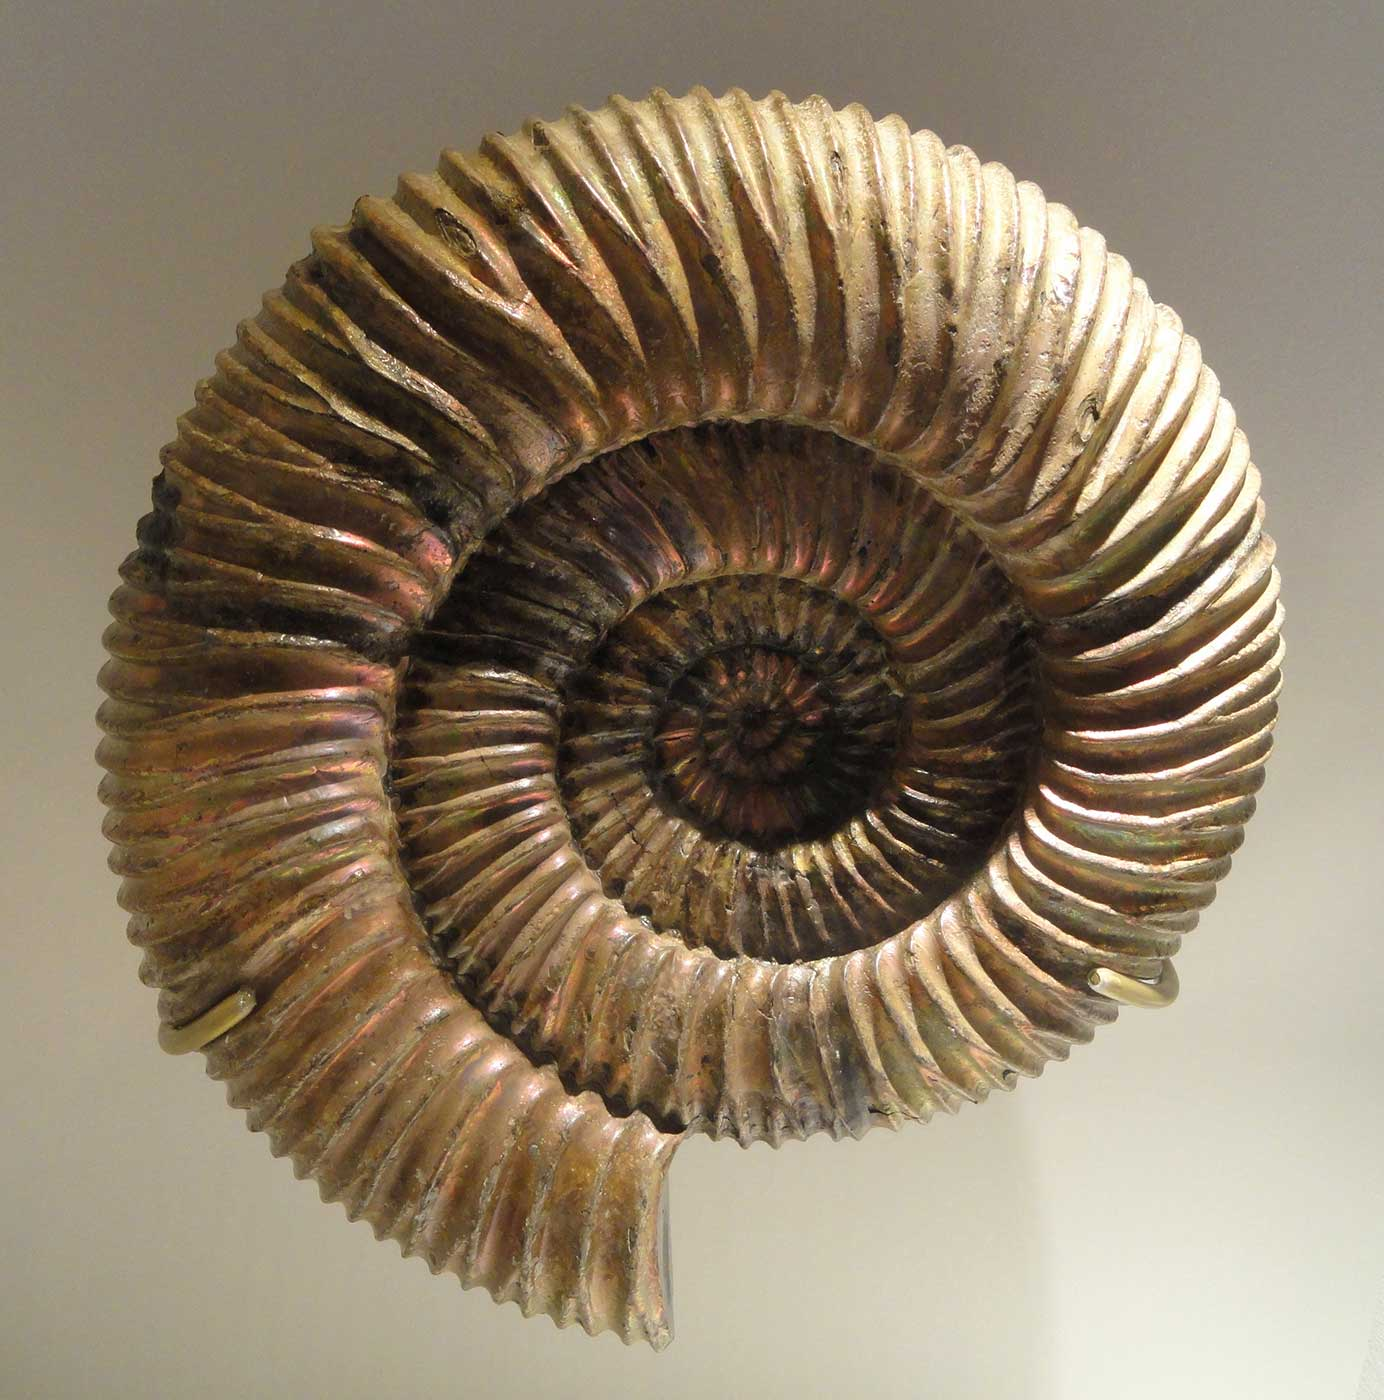 Colour photograph of a fossilised ribbed, spiralled shell. - click to view larger image